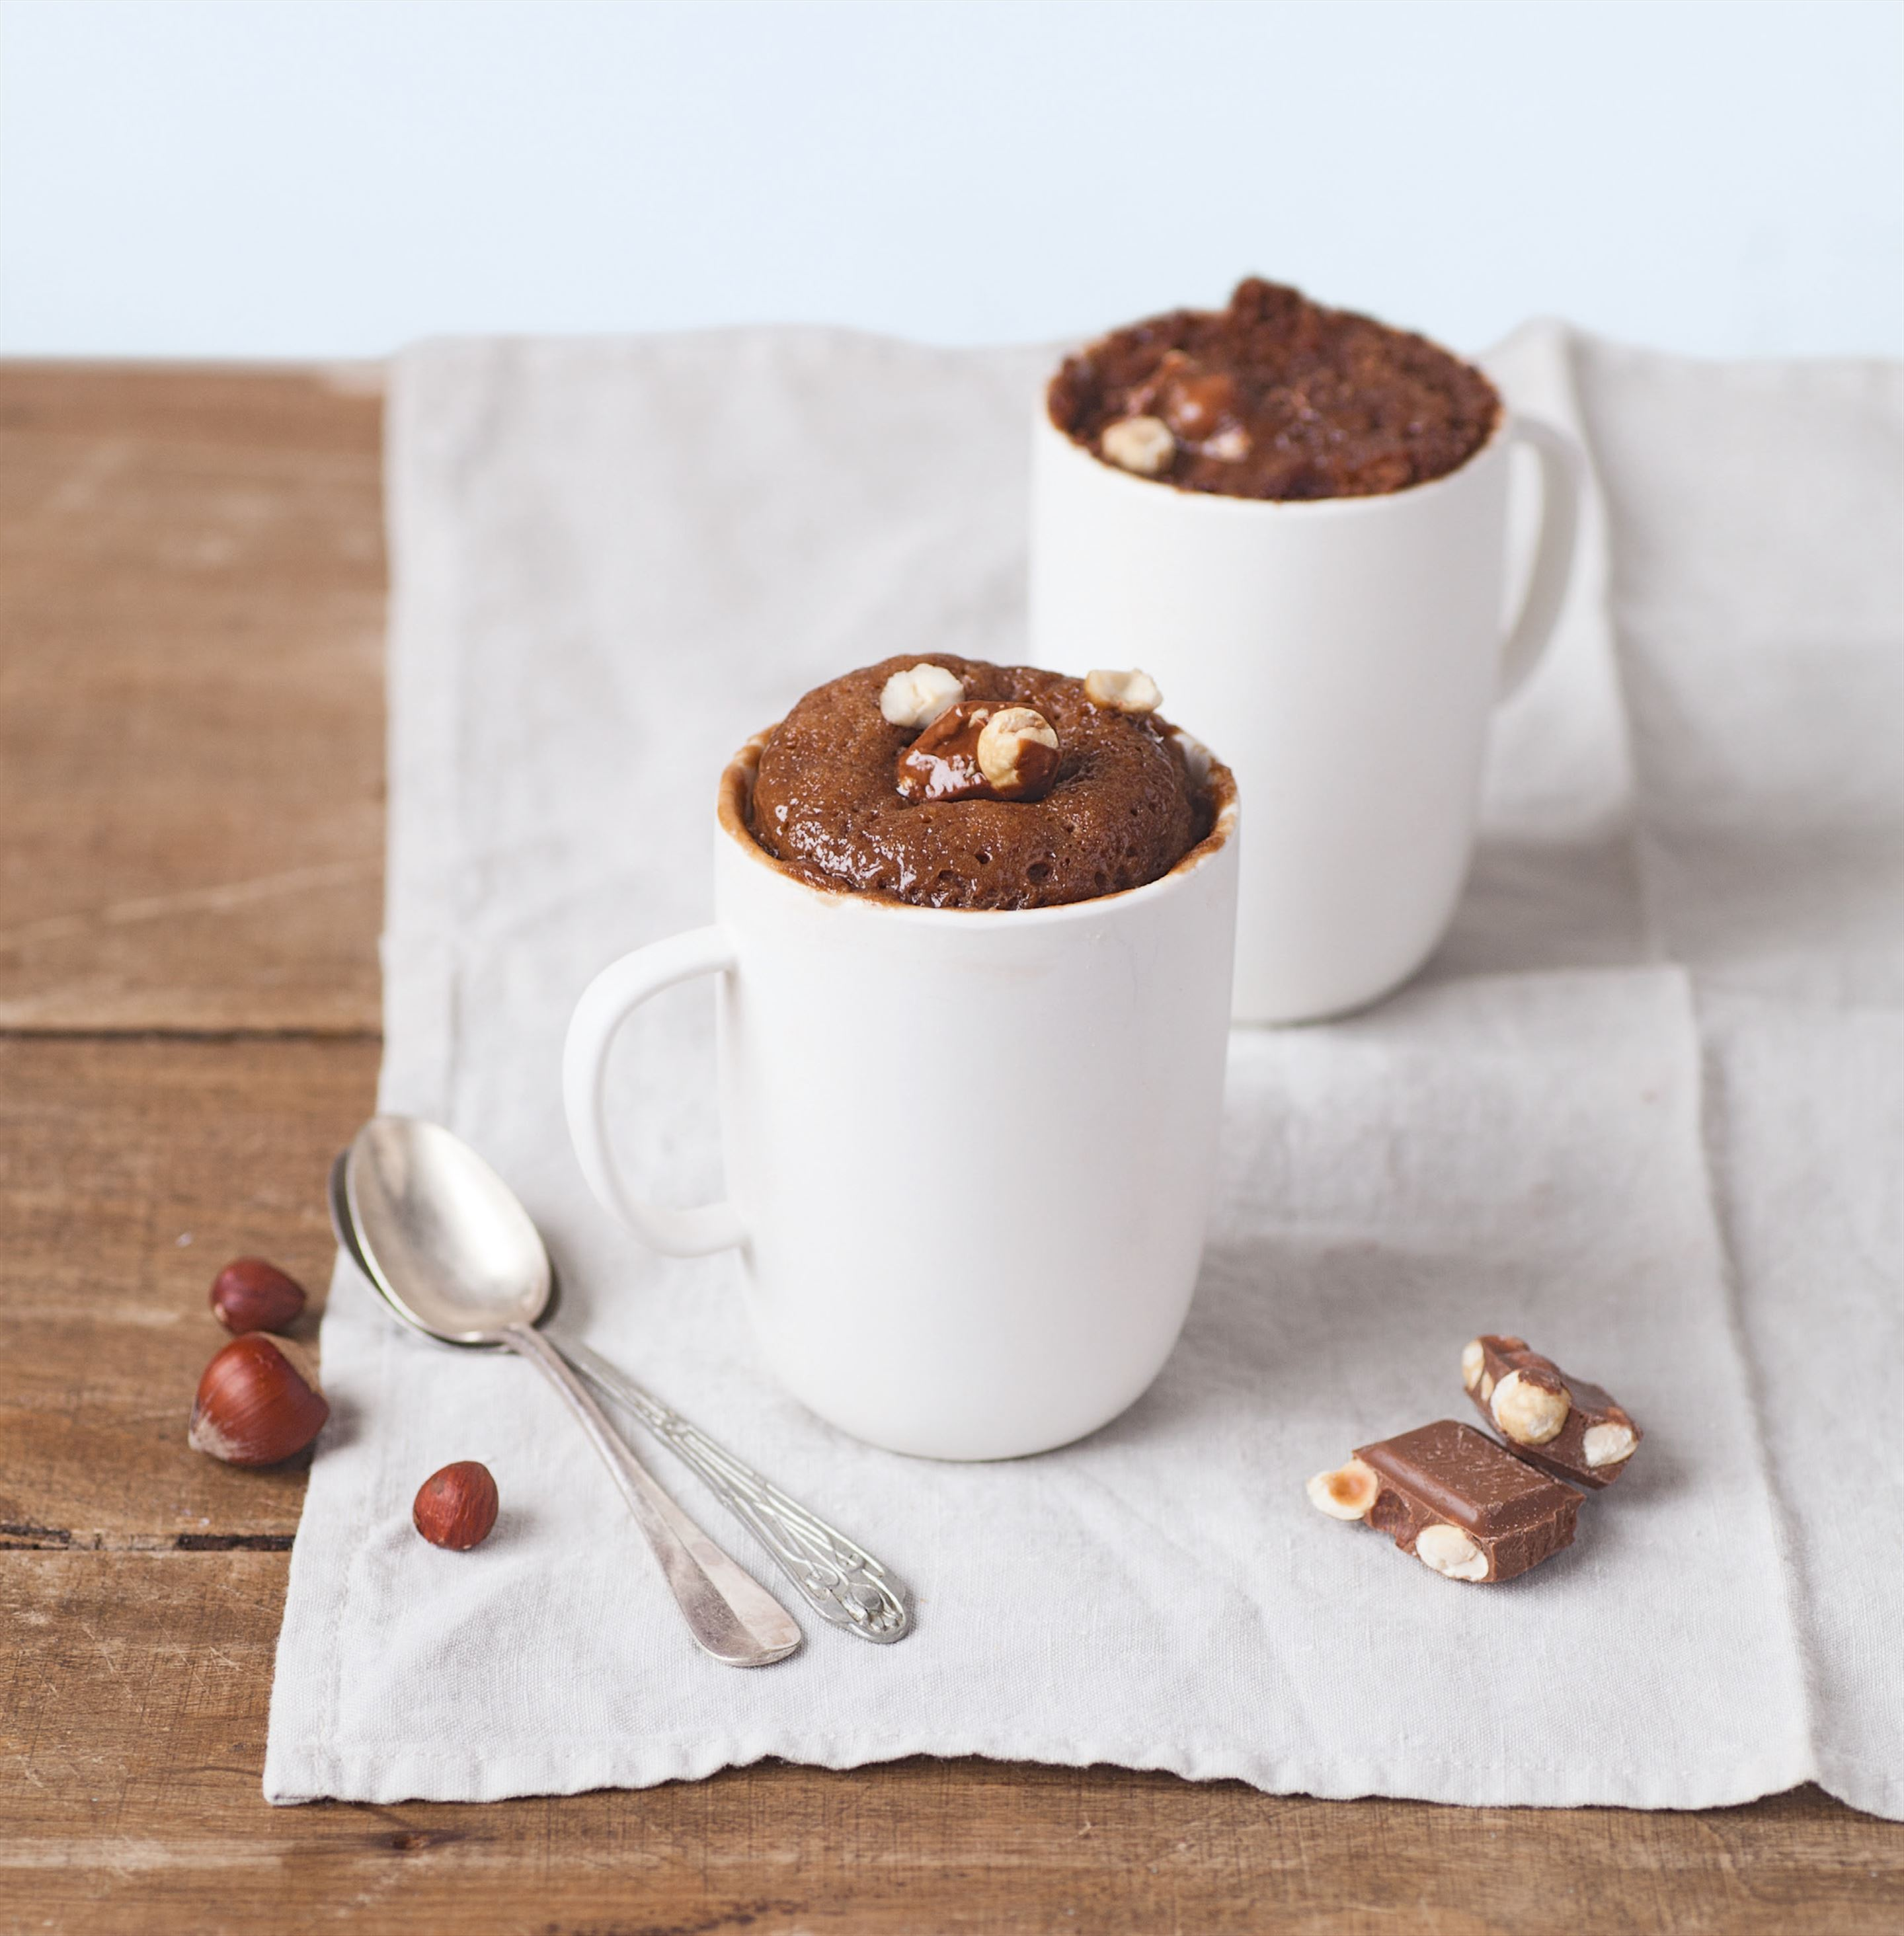 Milk chocolate & hazelnut melt-in-the-middle mug cake